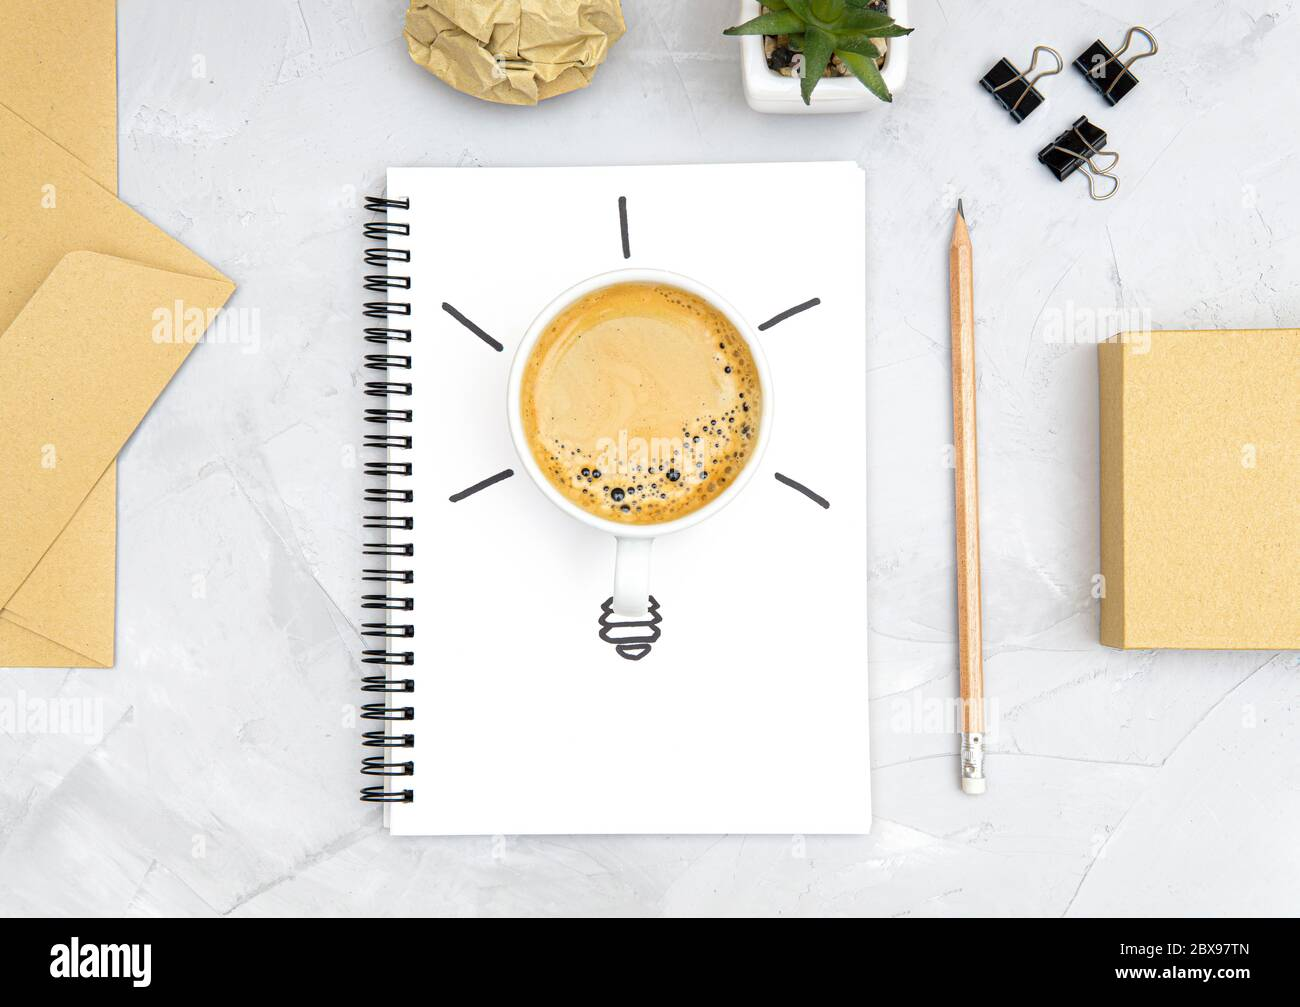 Light bulb symbol made of a fresh cup of coffee and a sketch on a spiral notebook. Office workplace flat lay. Refreshment and productivity concept. Bo Stock Photo